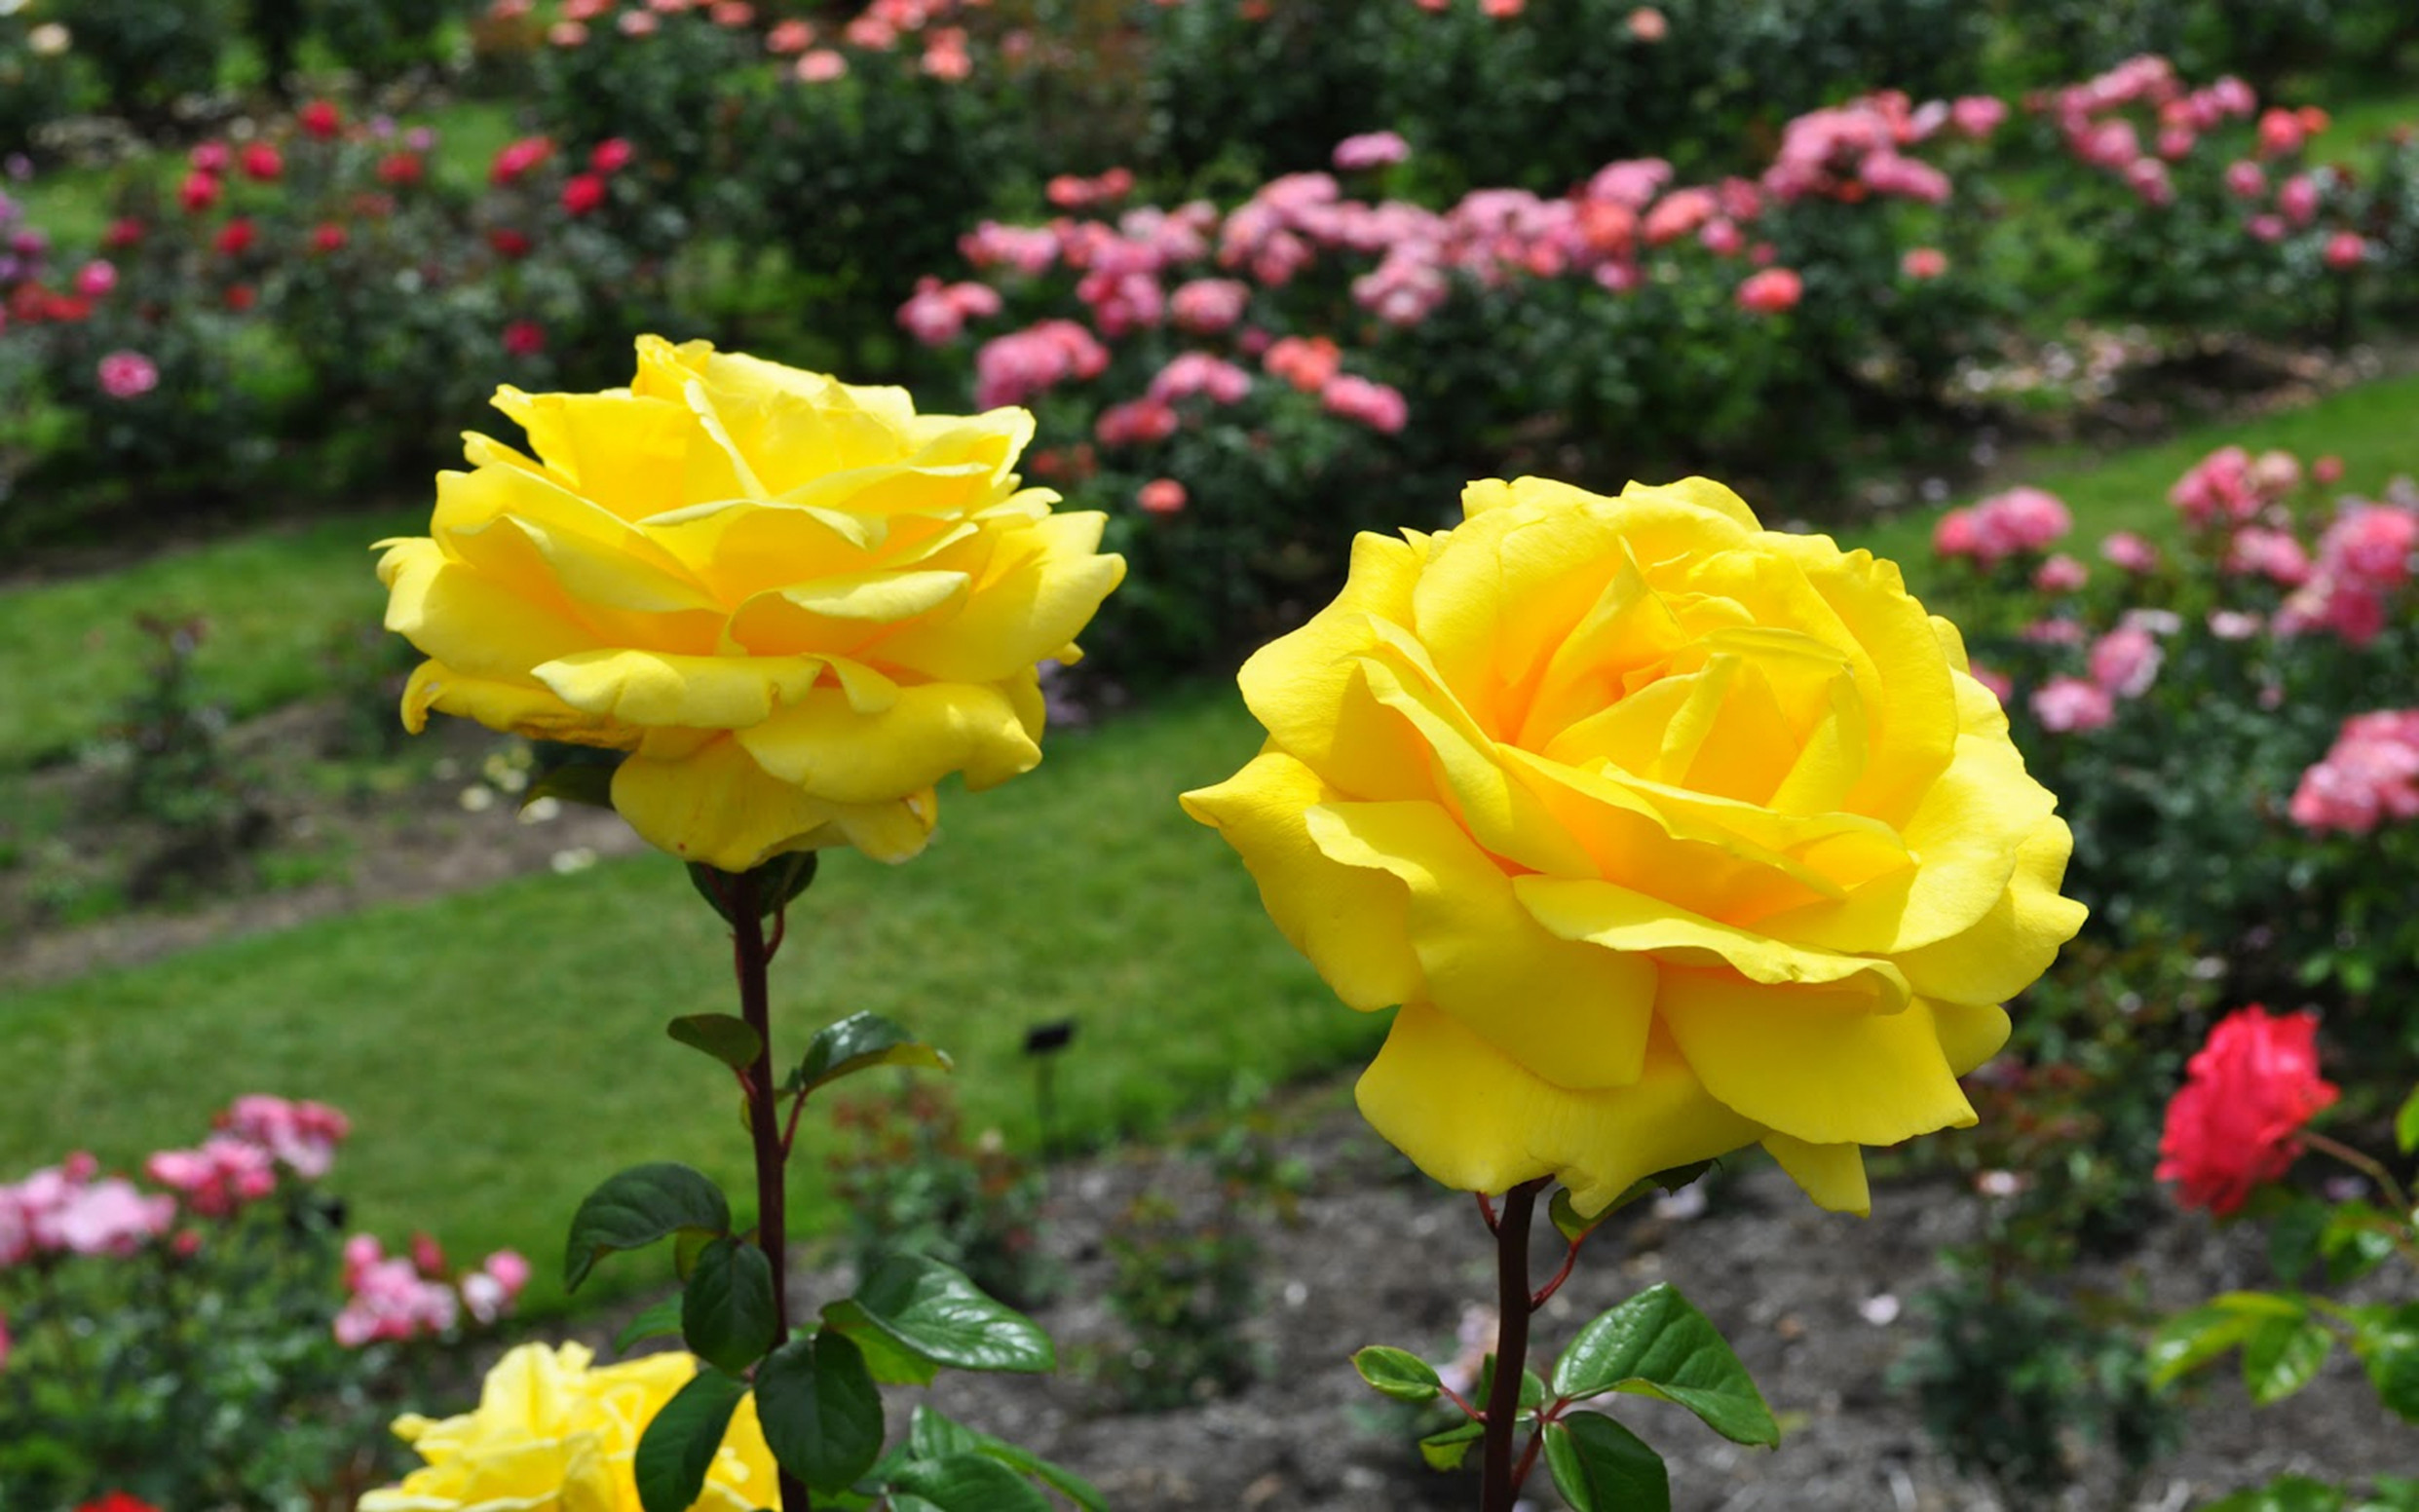 Most Beautiful Yellow Roses Wallpapers15 Good Morning Romantic Rose 498256 Hd Wallpaper Backgrounds Download